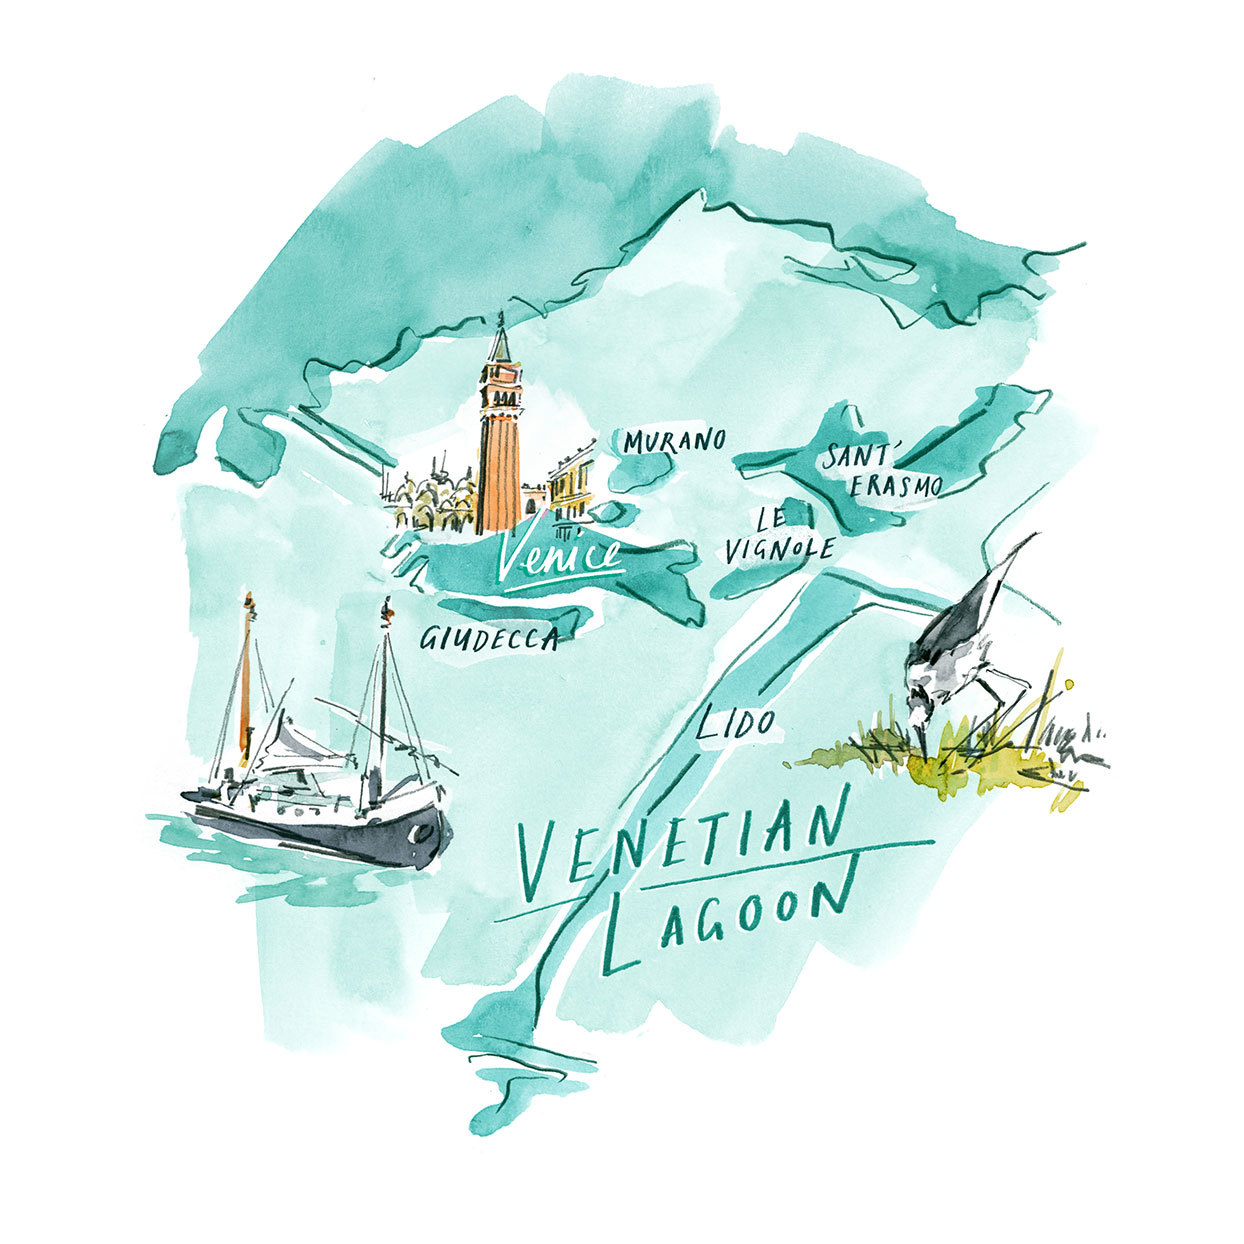 an illustration of Venice and surrounding islands